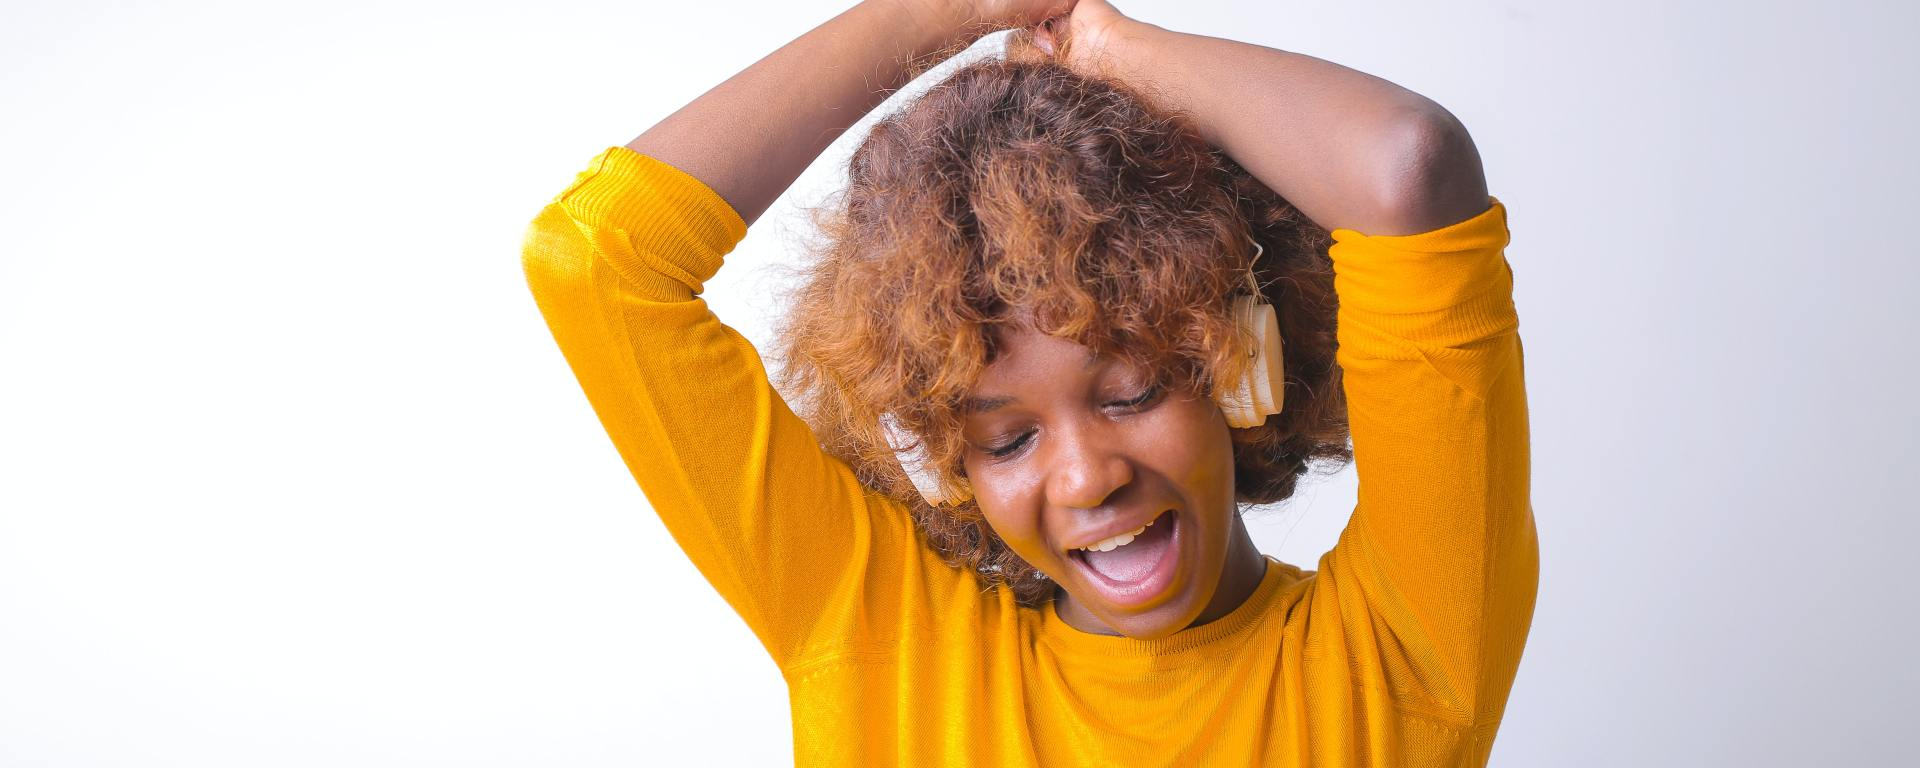 A black person with feminine presentation is in a yellow shirt with medium hair wearing headphones and singing to themselves with their arms over their head